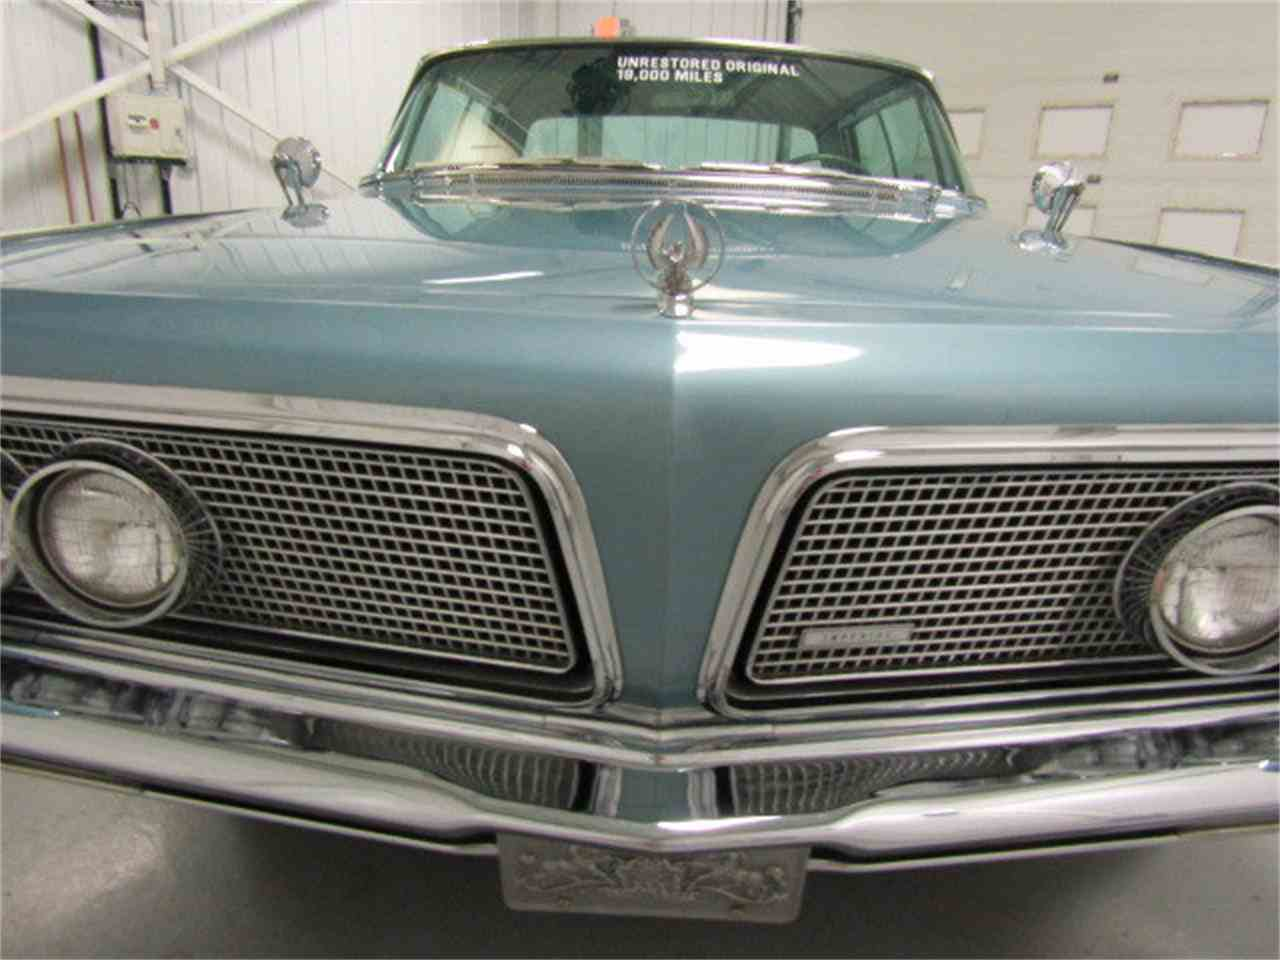 Large Picture of 1964 Chrysler Imperial located in Christiansburg Virginia - $21,970.00 - JLDR